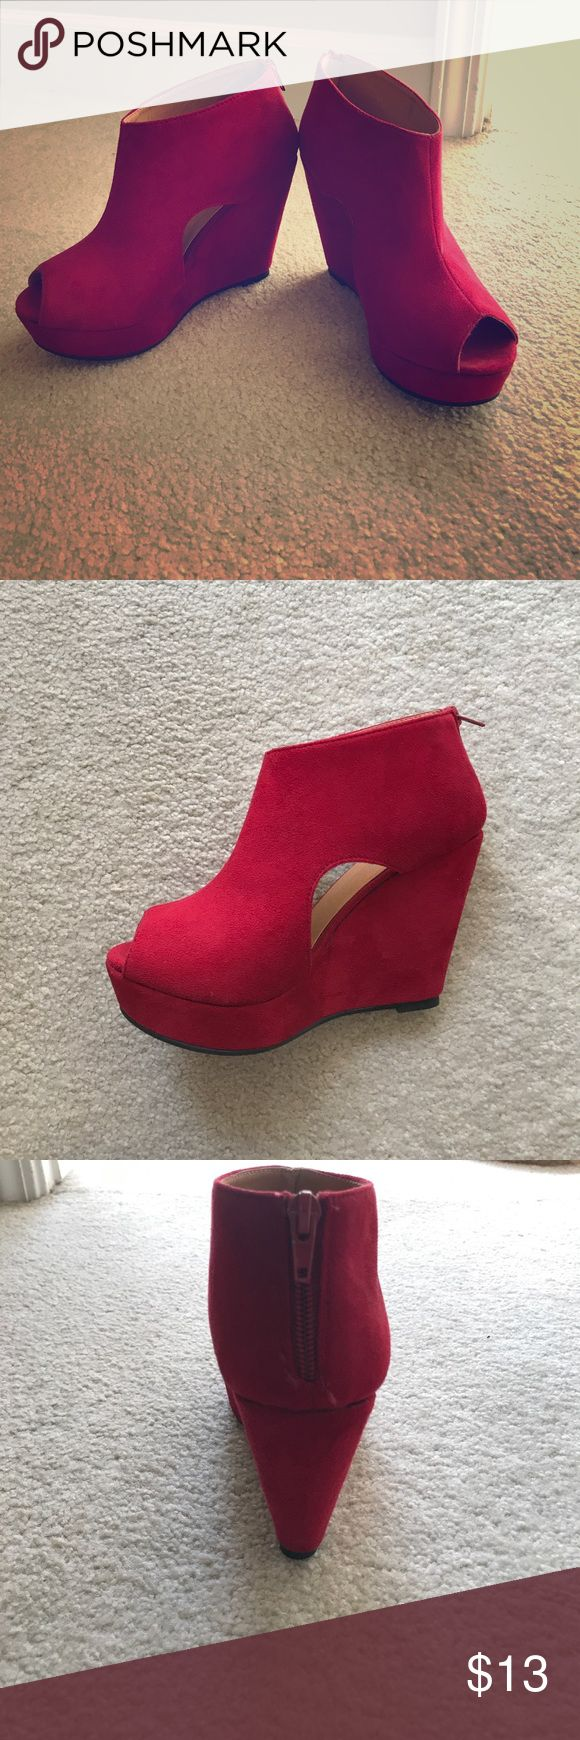 Women's red platform wedge shoes Red platform wedge shoes with side cut outs. Us women's size 8 only worn once! Cotton On Shoes Wedges